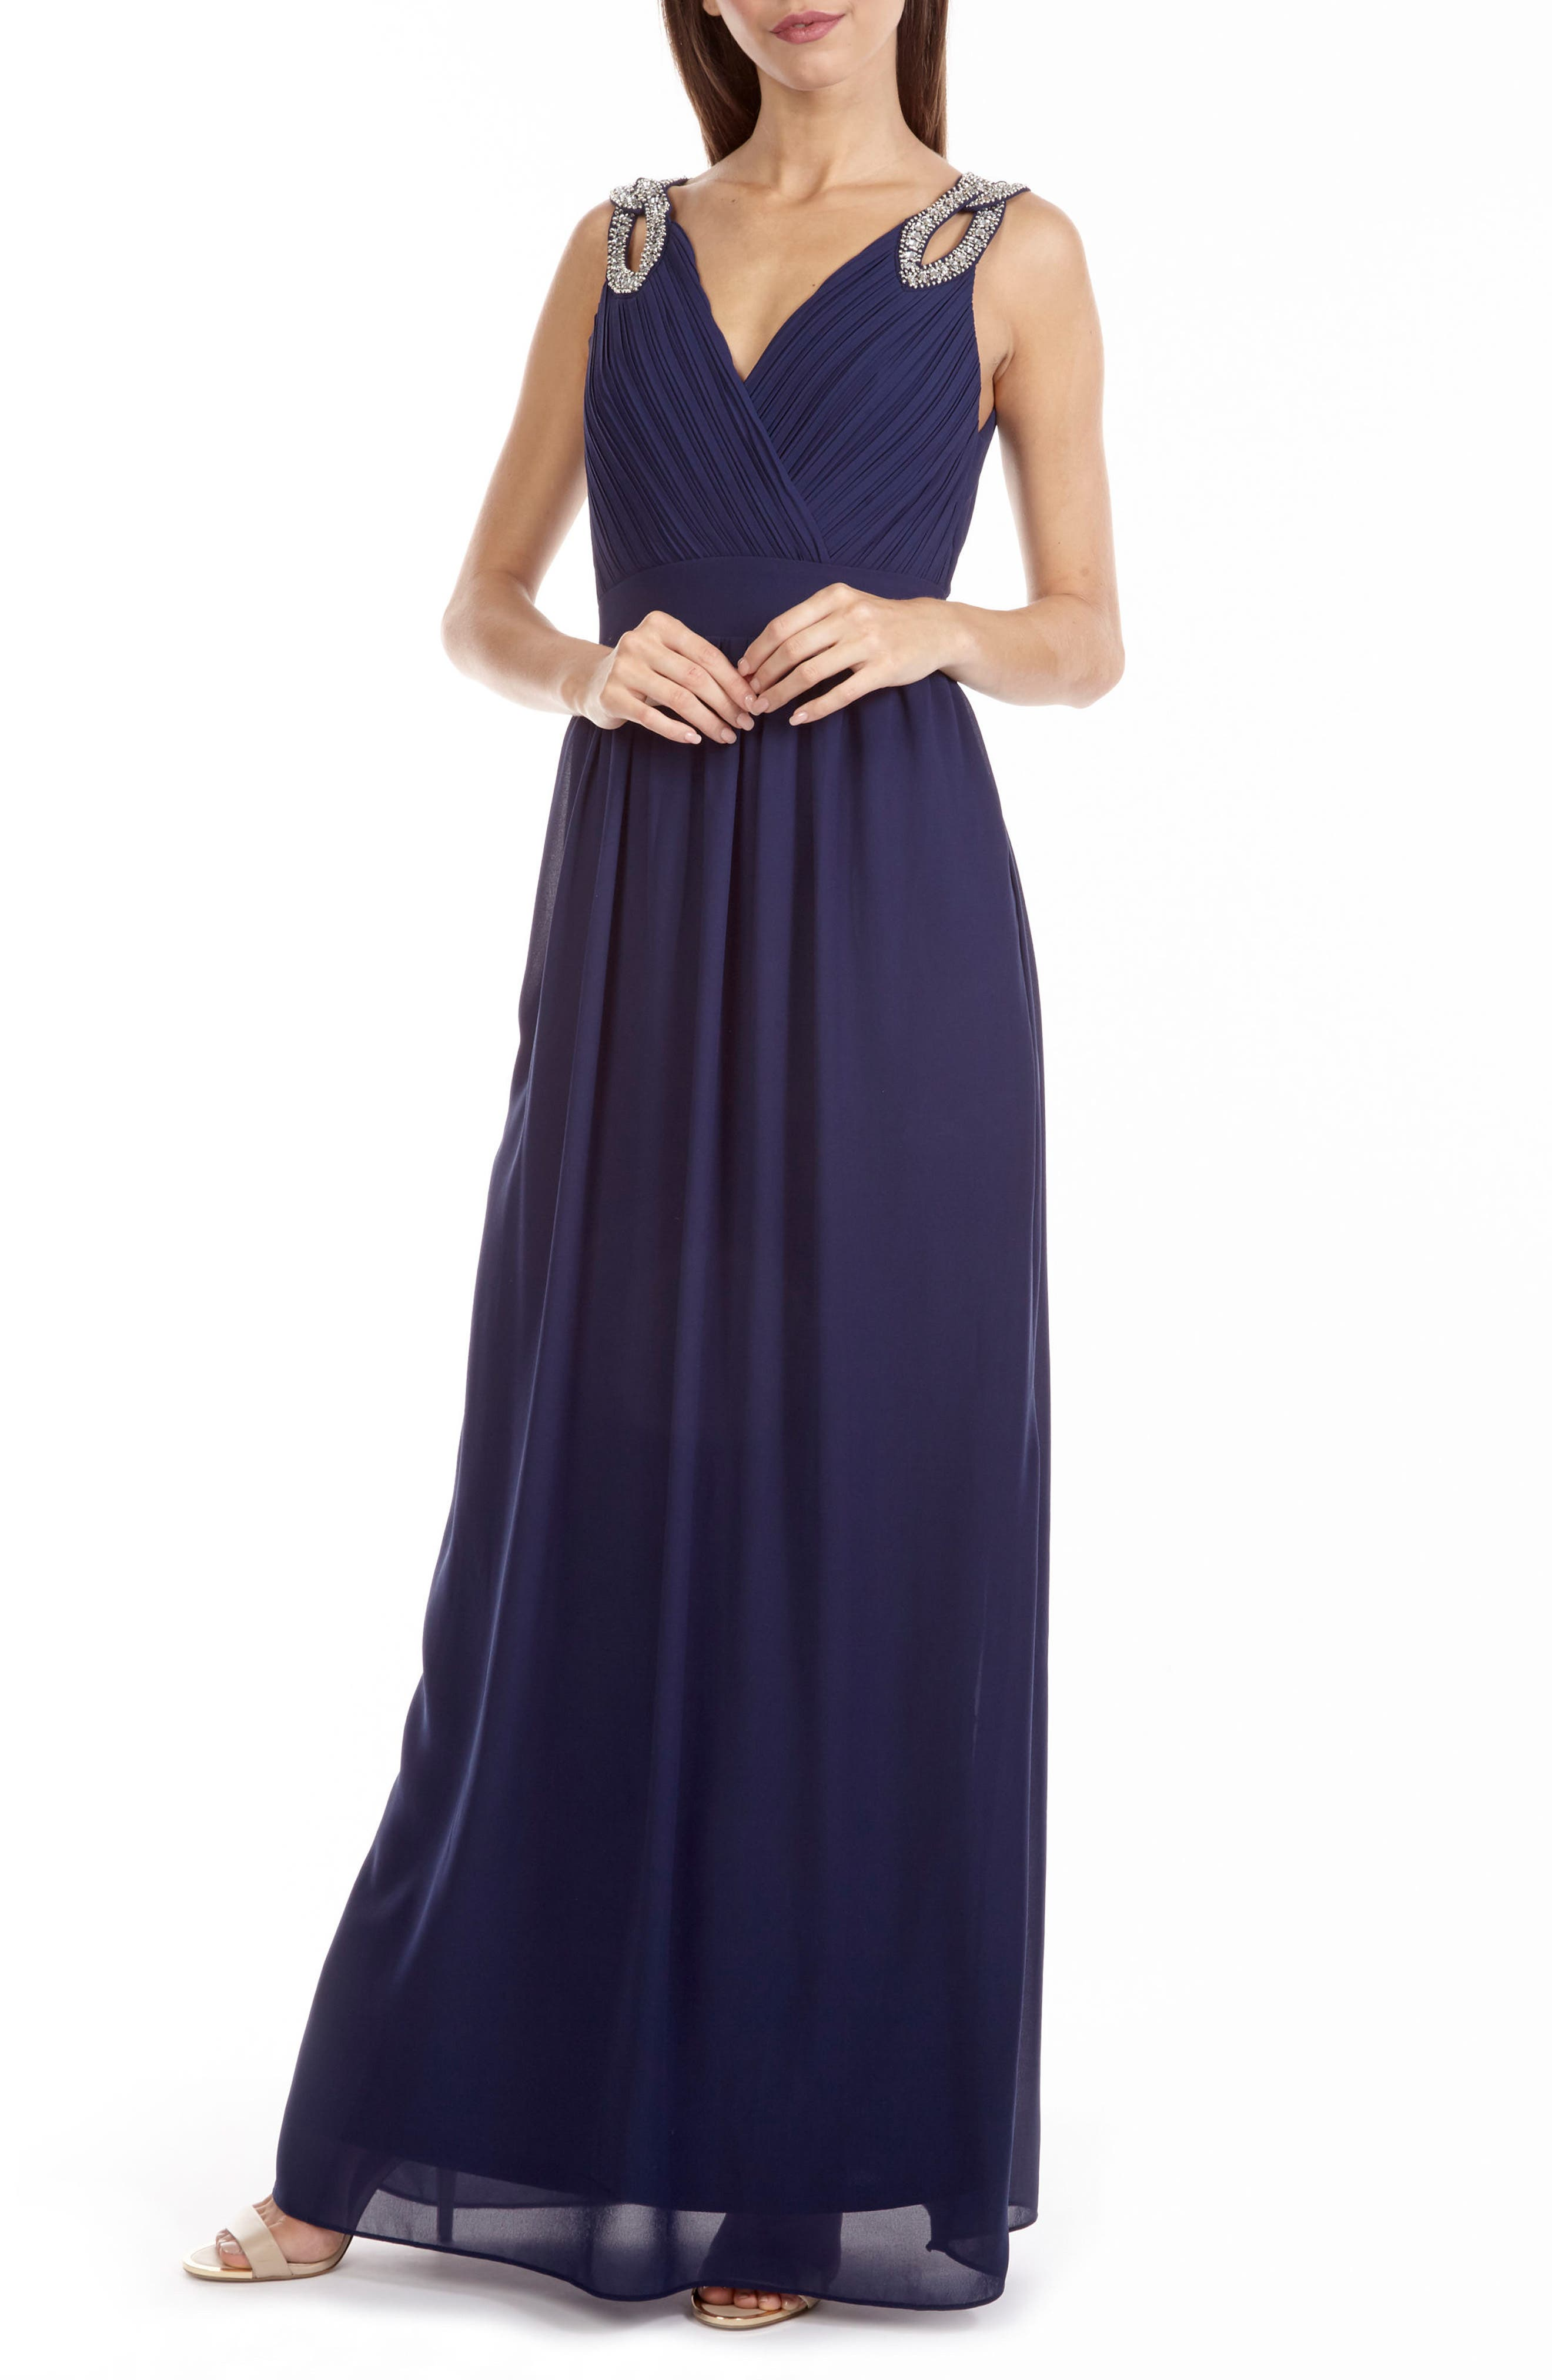 Debbie Embellished Pleated Chiffon Gown,                             Alternate thumbnail 4, color,                             410